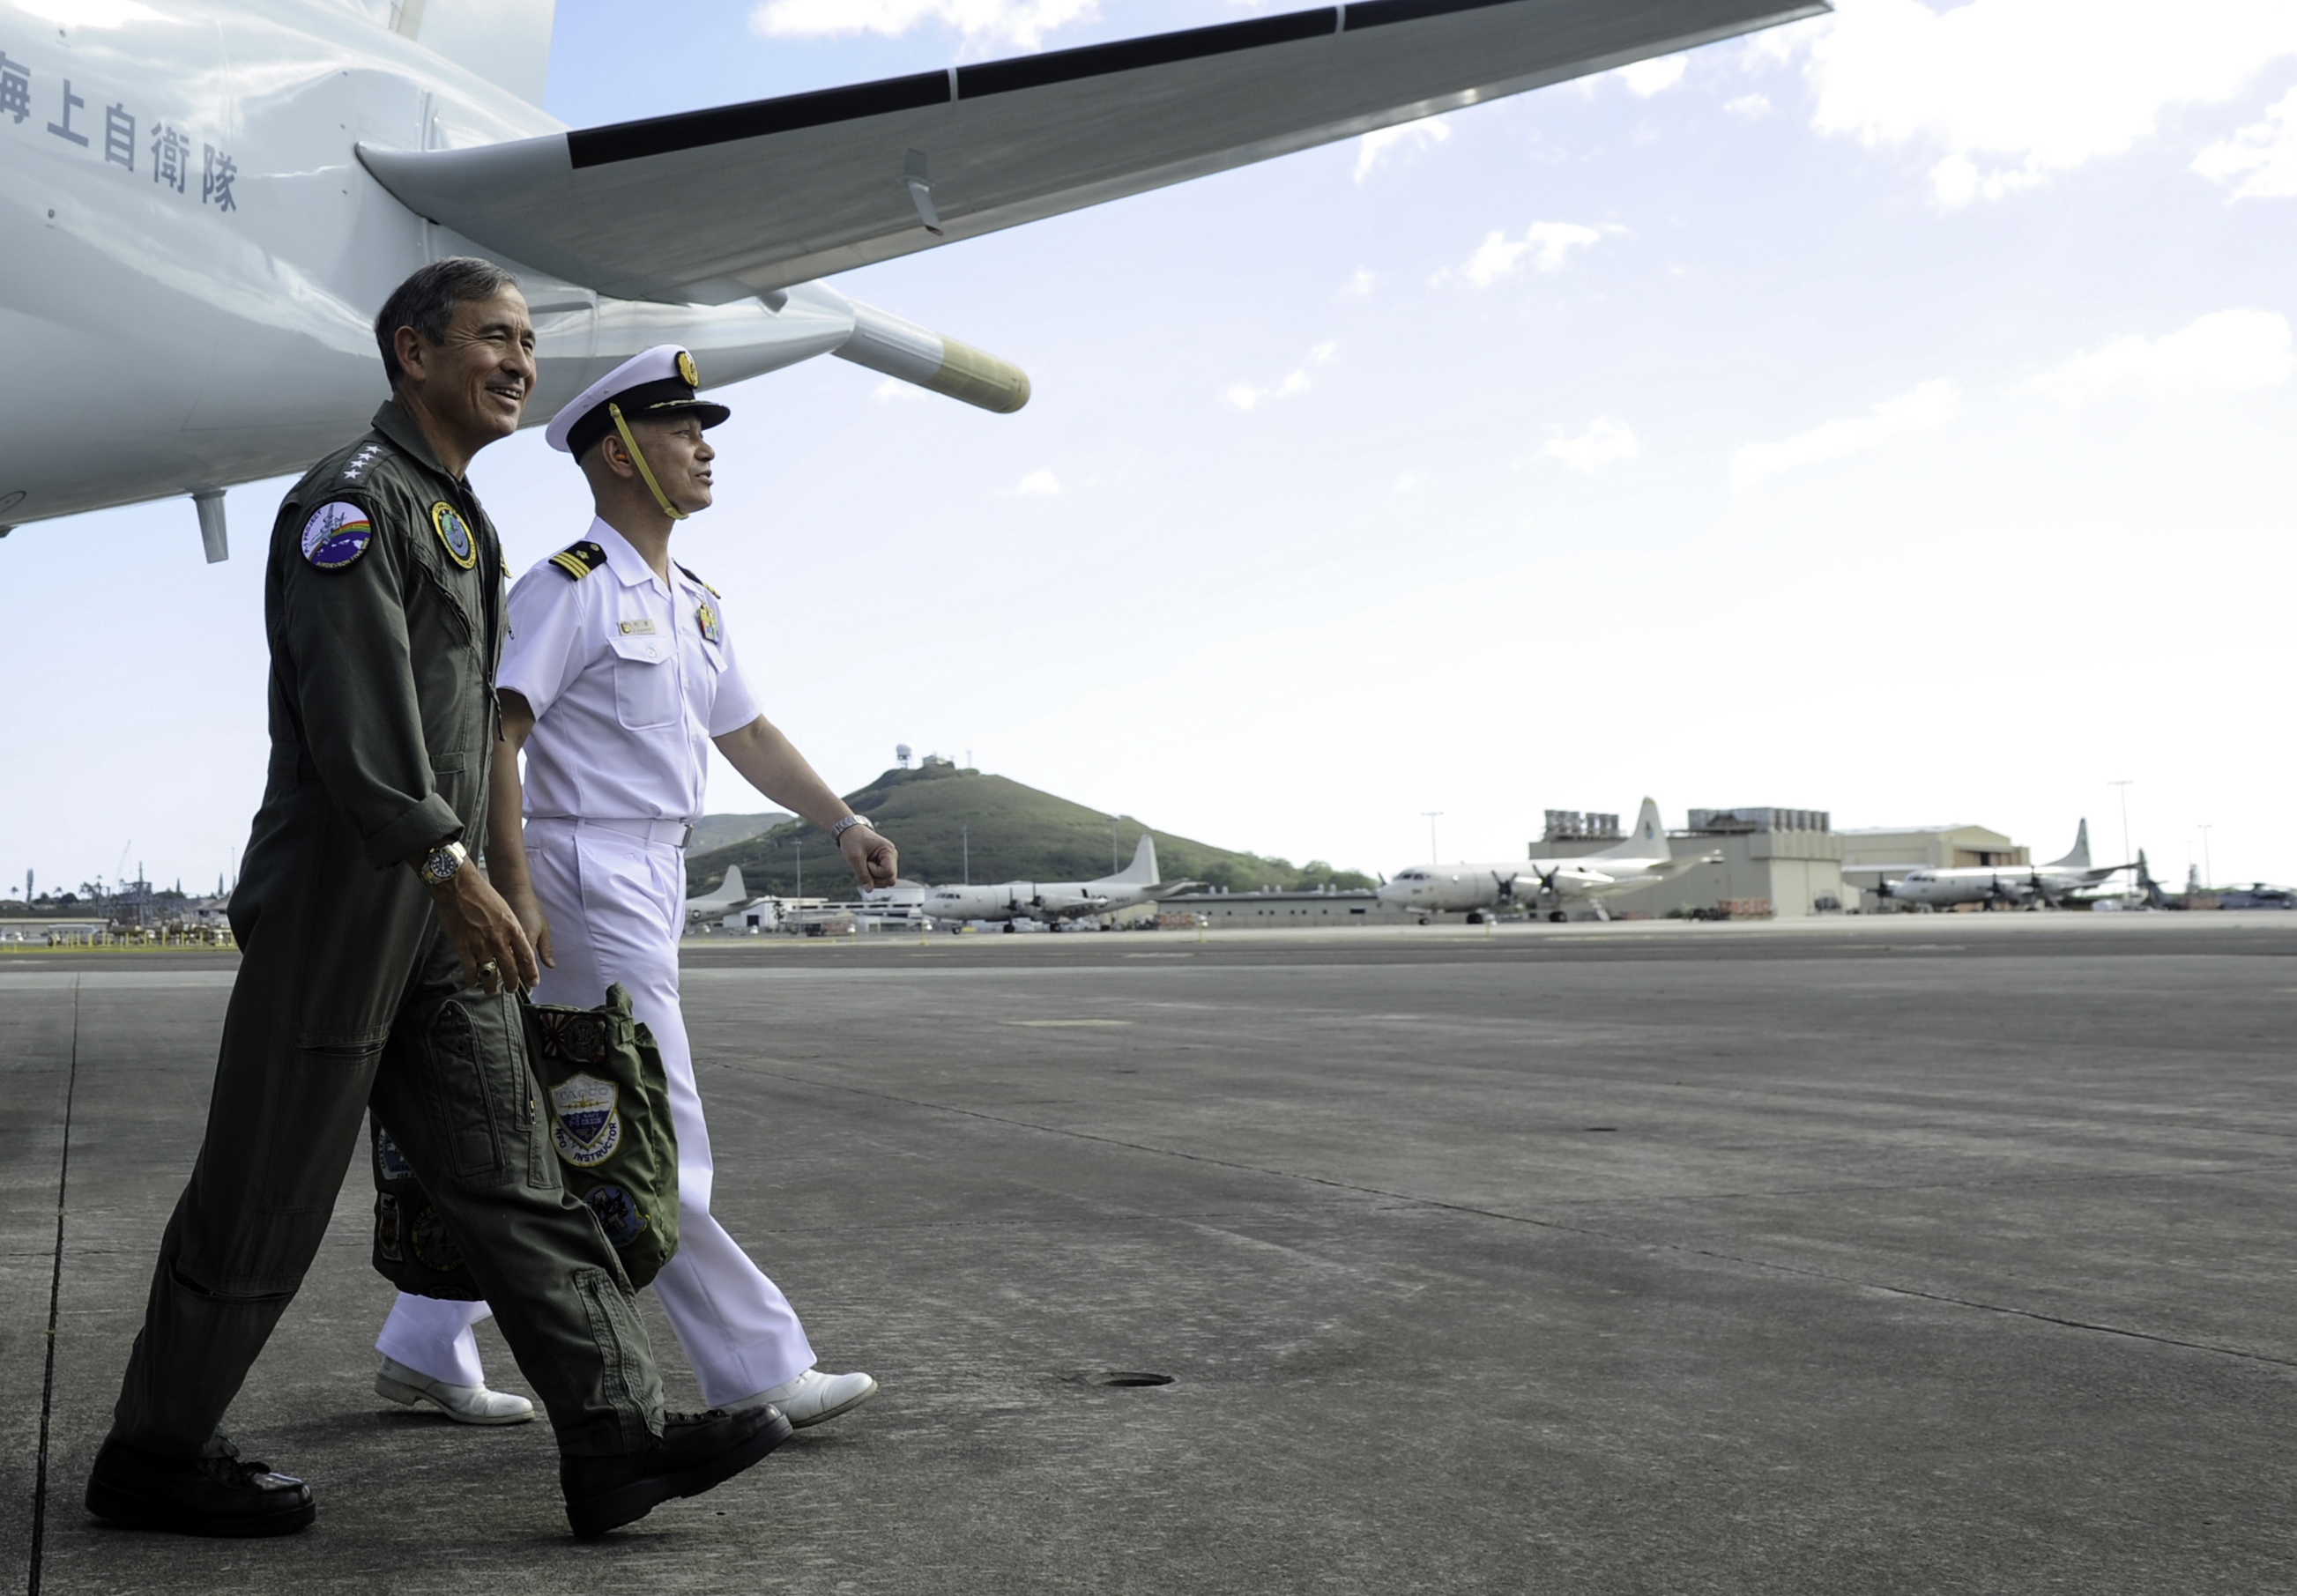 Adm. Harry B. Harris Jr., commander of U.S. Pacific Fleet, walks with Japan Maritime Self-Defense Force Cmdr. Kazutaka Sugimoto on Feb. 6, 2015. US Navy Photo